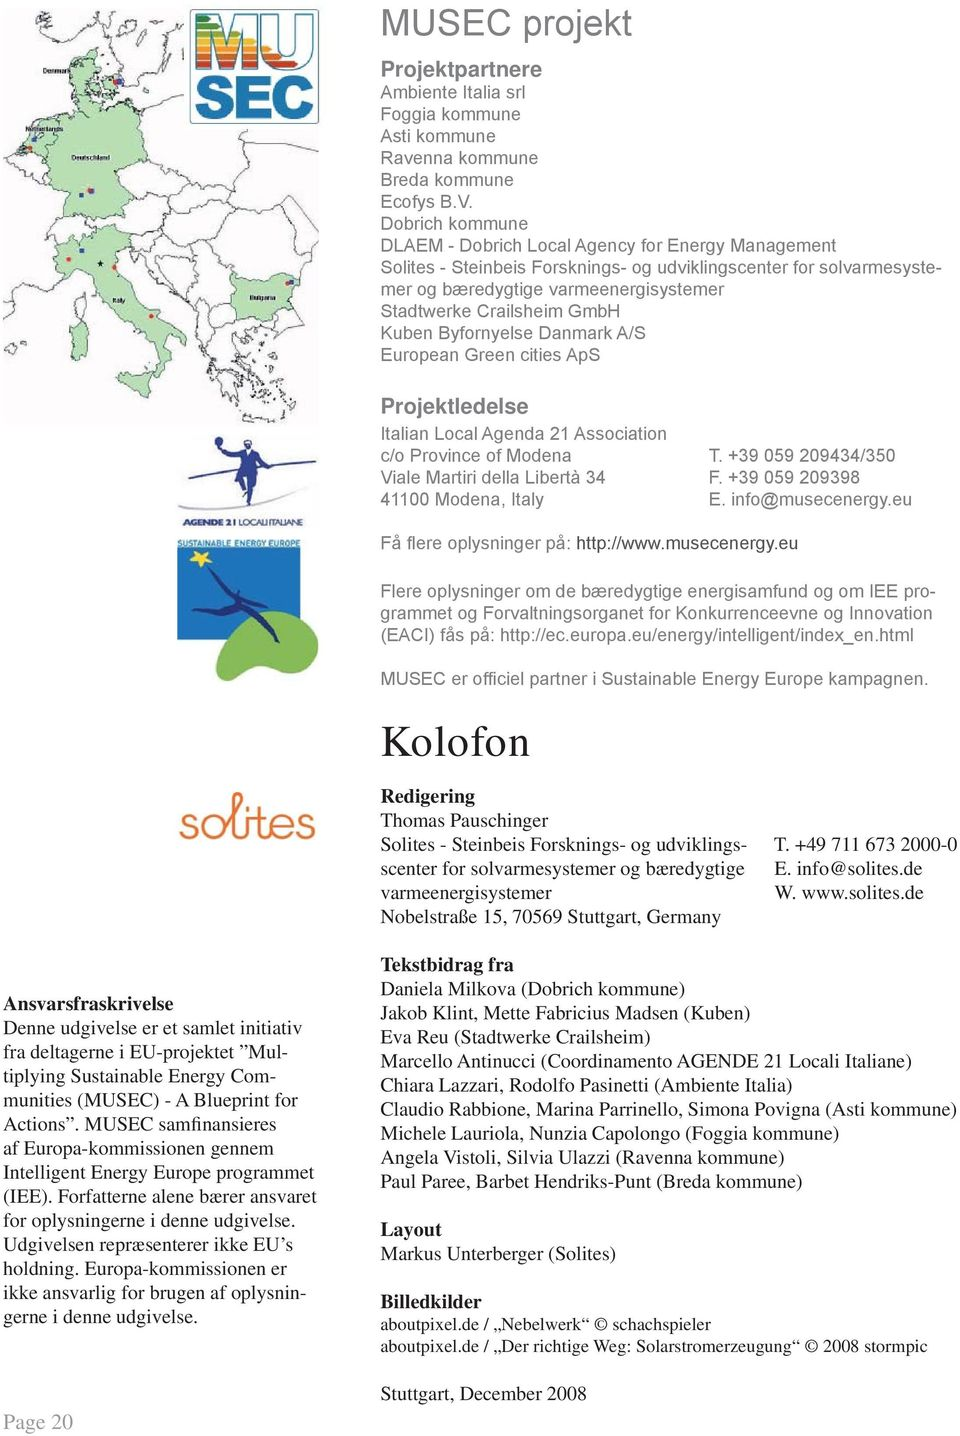 GmbH Kuben Byfornyelse Danmark A/S European Green cities ApS Projektledelse Italian Local Agenda 21 Association c/o Province of Modena T. +39 059 209434/350 Viale Martiri della Libertà 34 F.